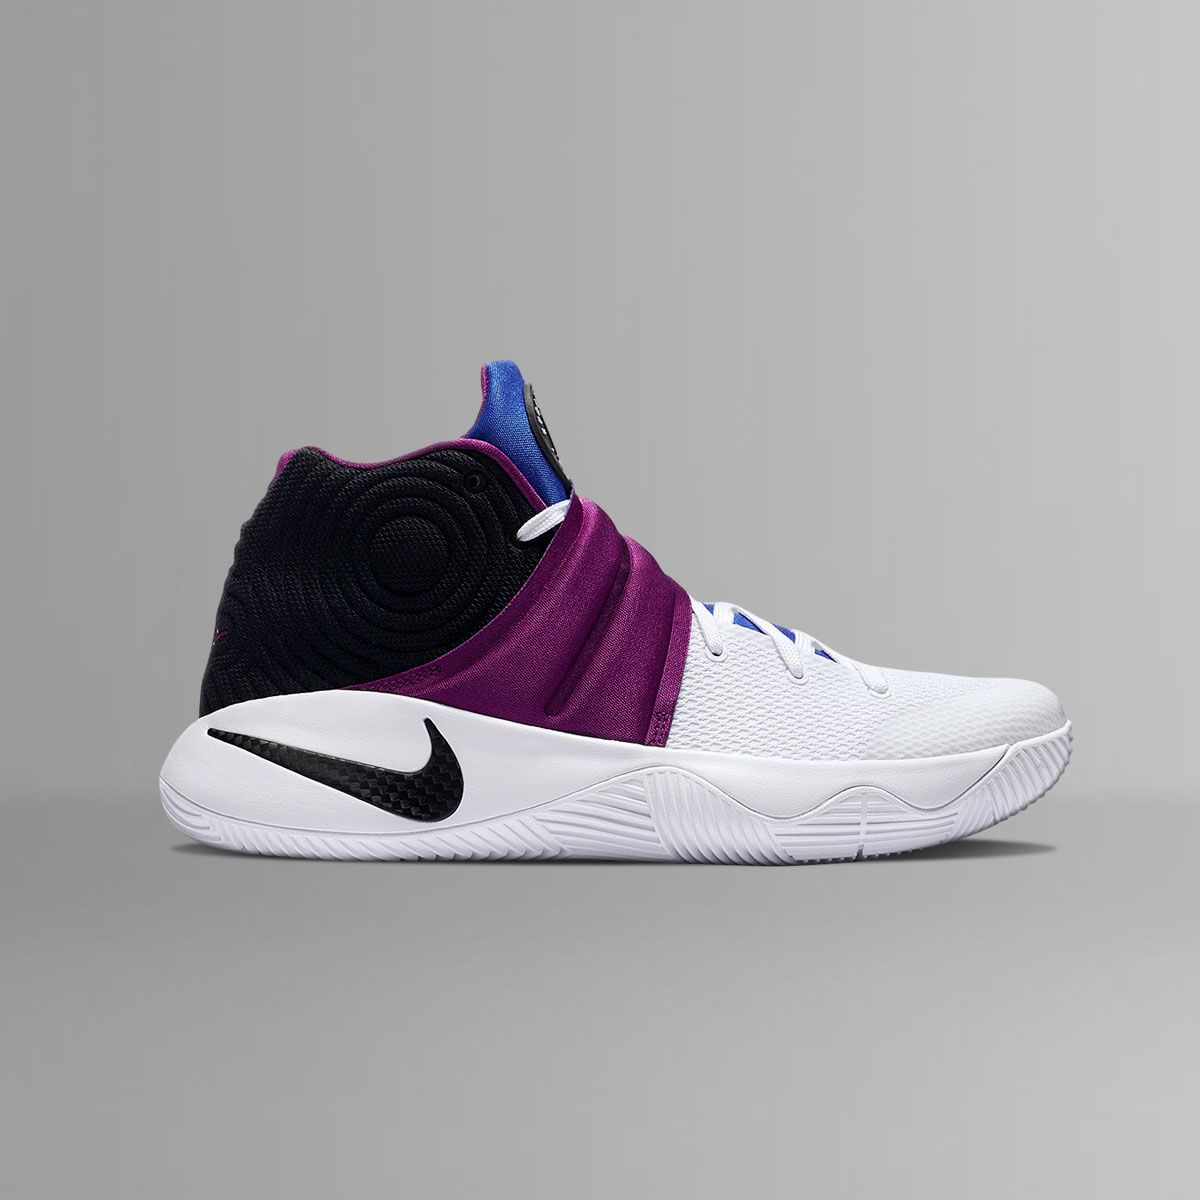 nike hypermax pics of kyrie irving shoes